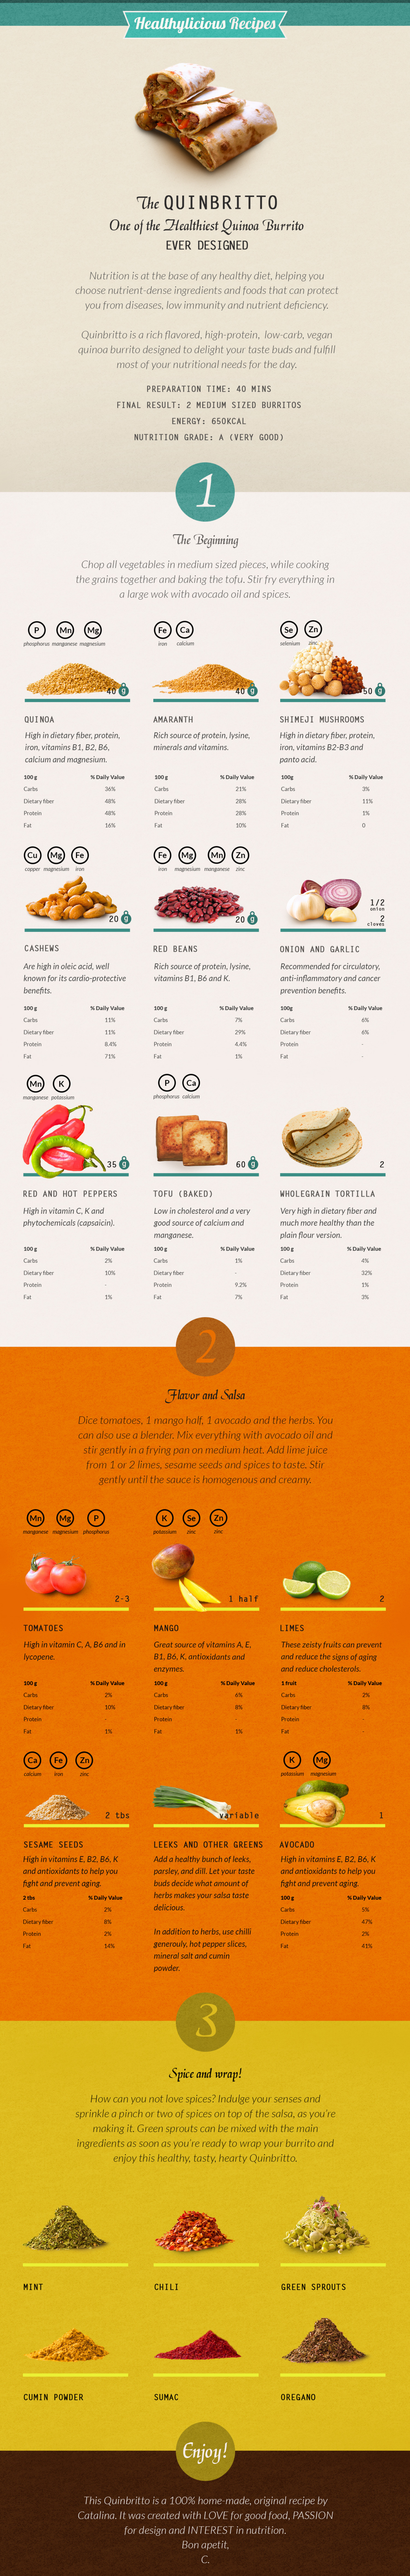 Visual Recipe of A Nutrient Rich Quinoa Burrito Infographic